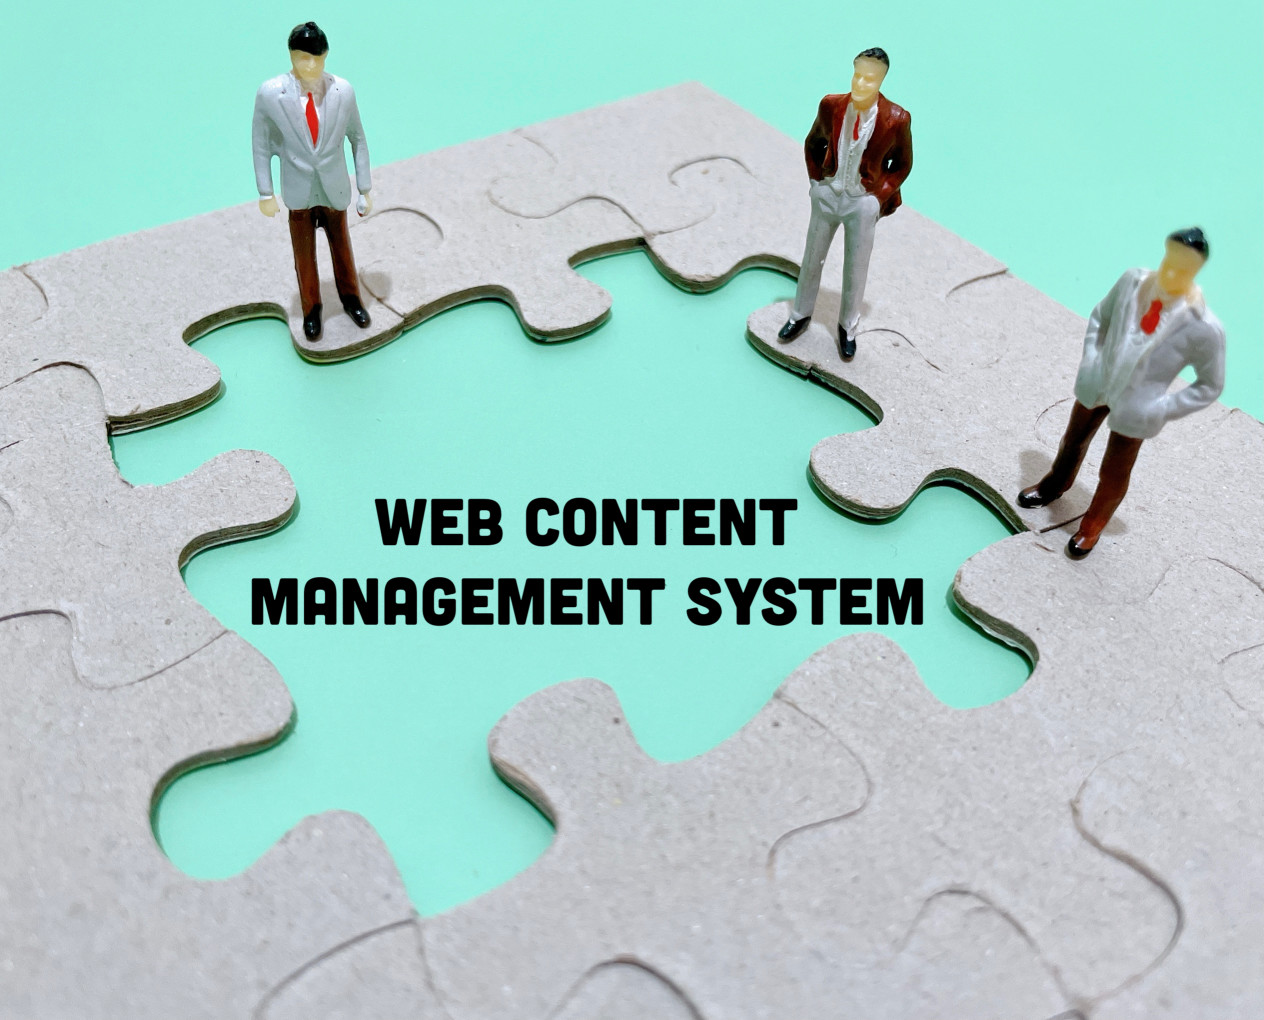 6 tips to ensure better continuity of your website.